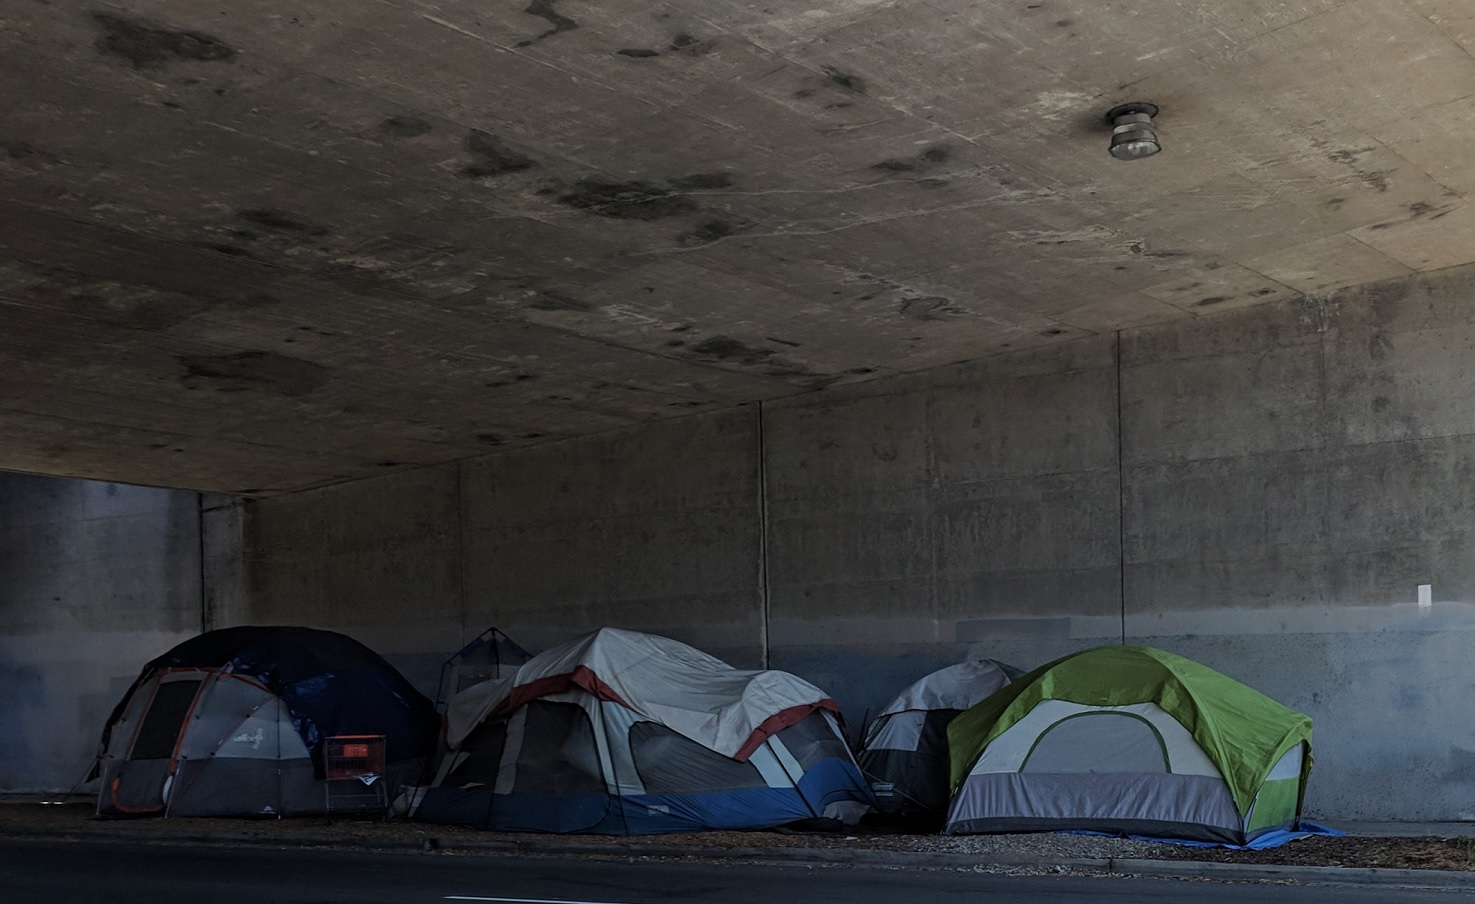 Several tents packed closely together under an overhanging concrete structure.